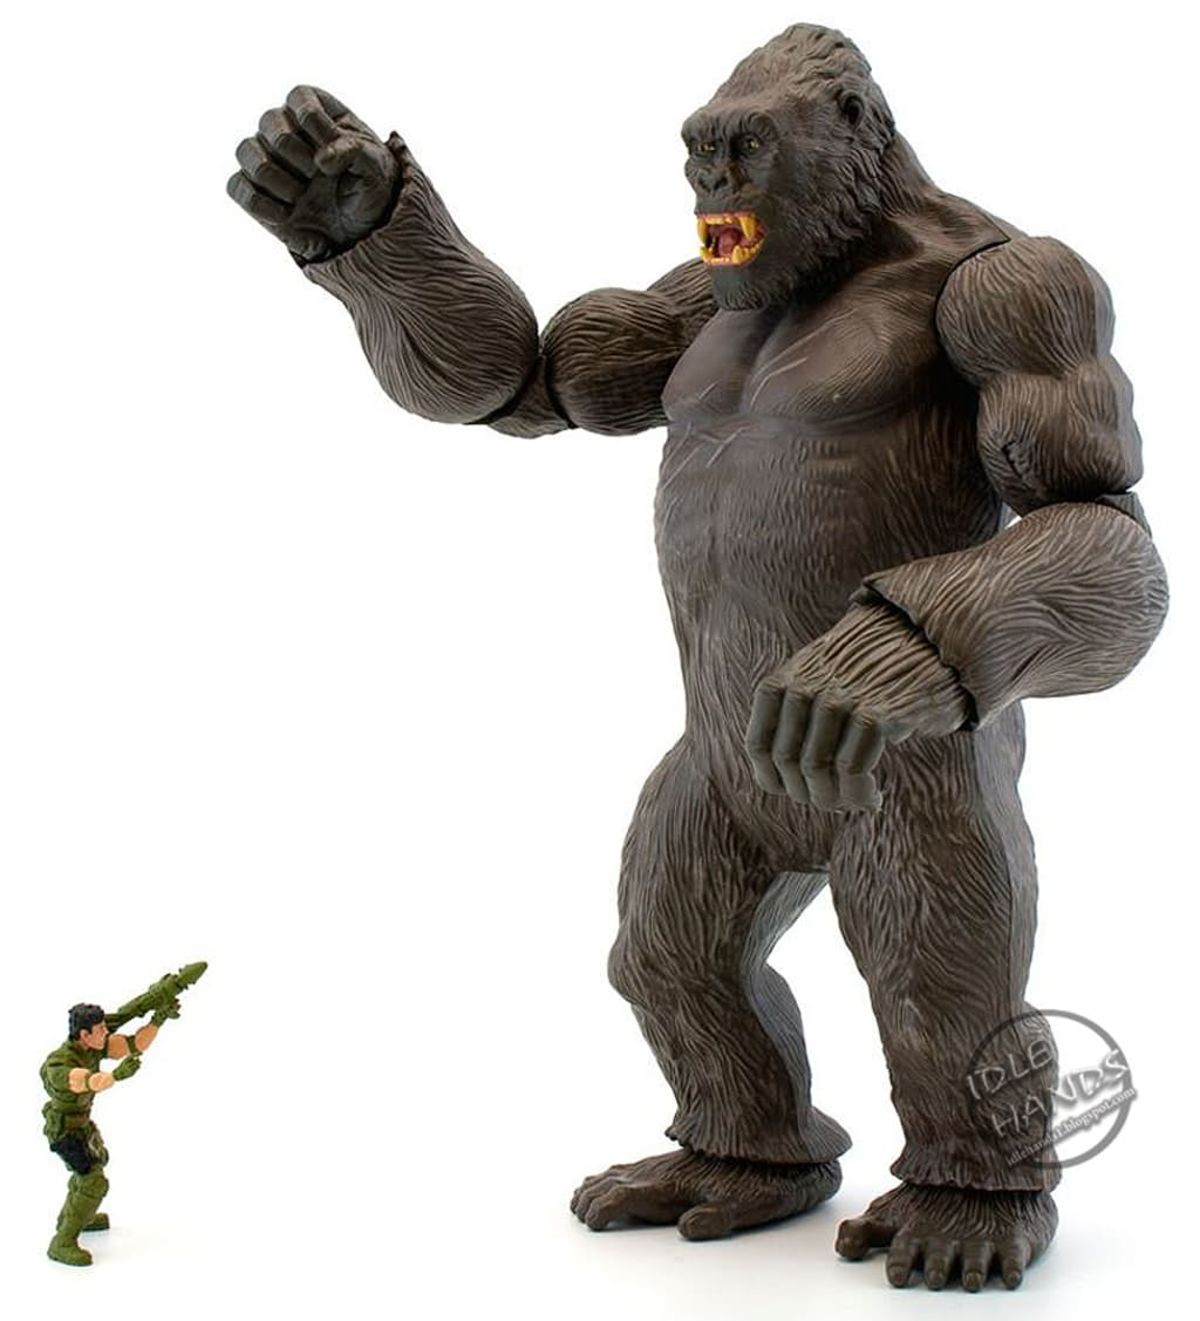 Get A First Look At The Skullcrawlers In Toy Images For Kong